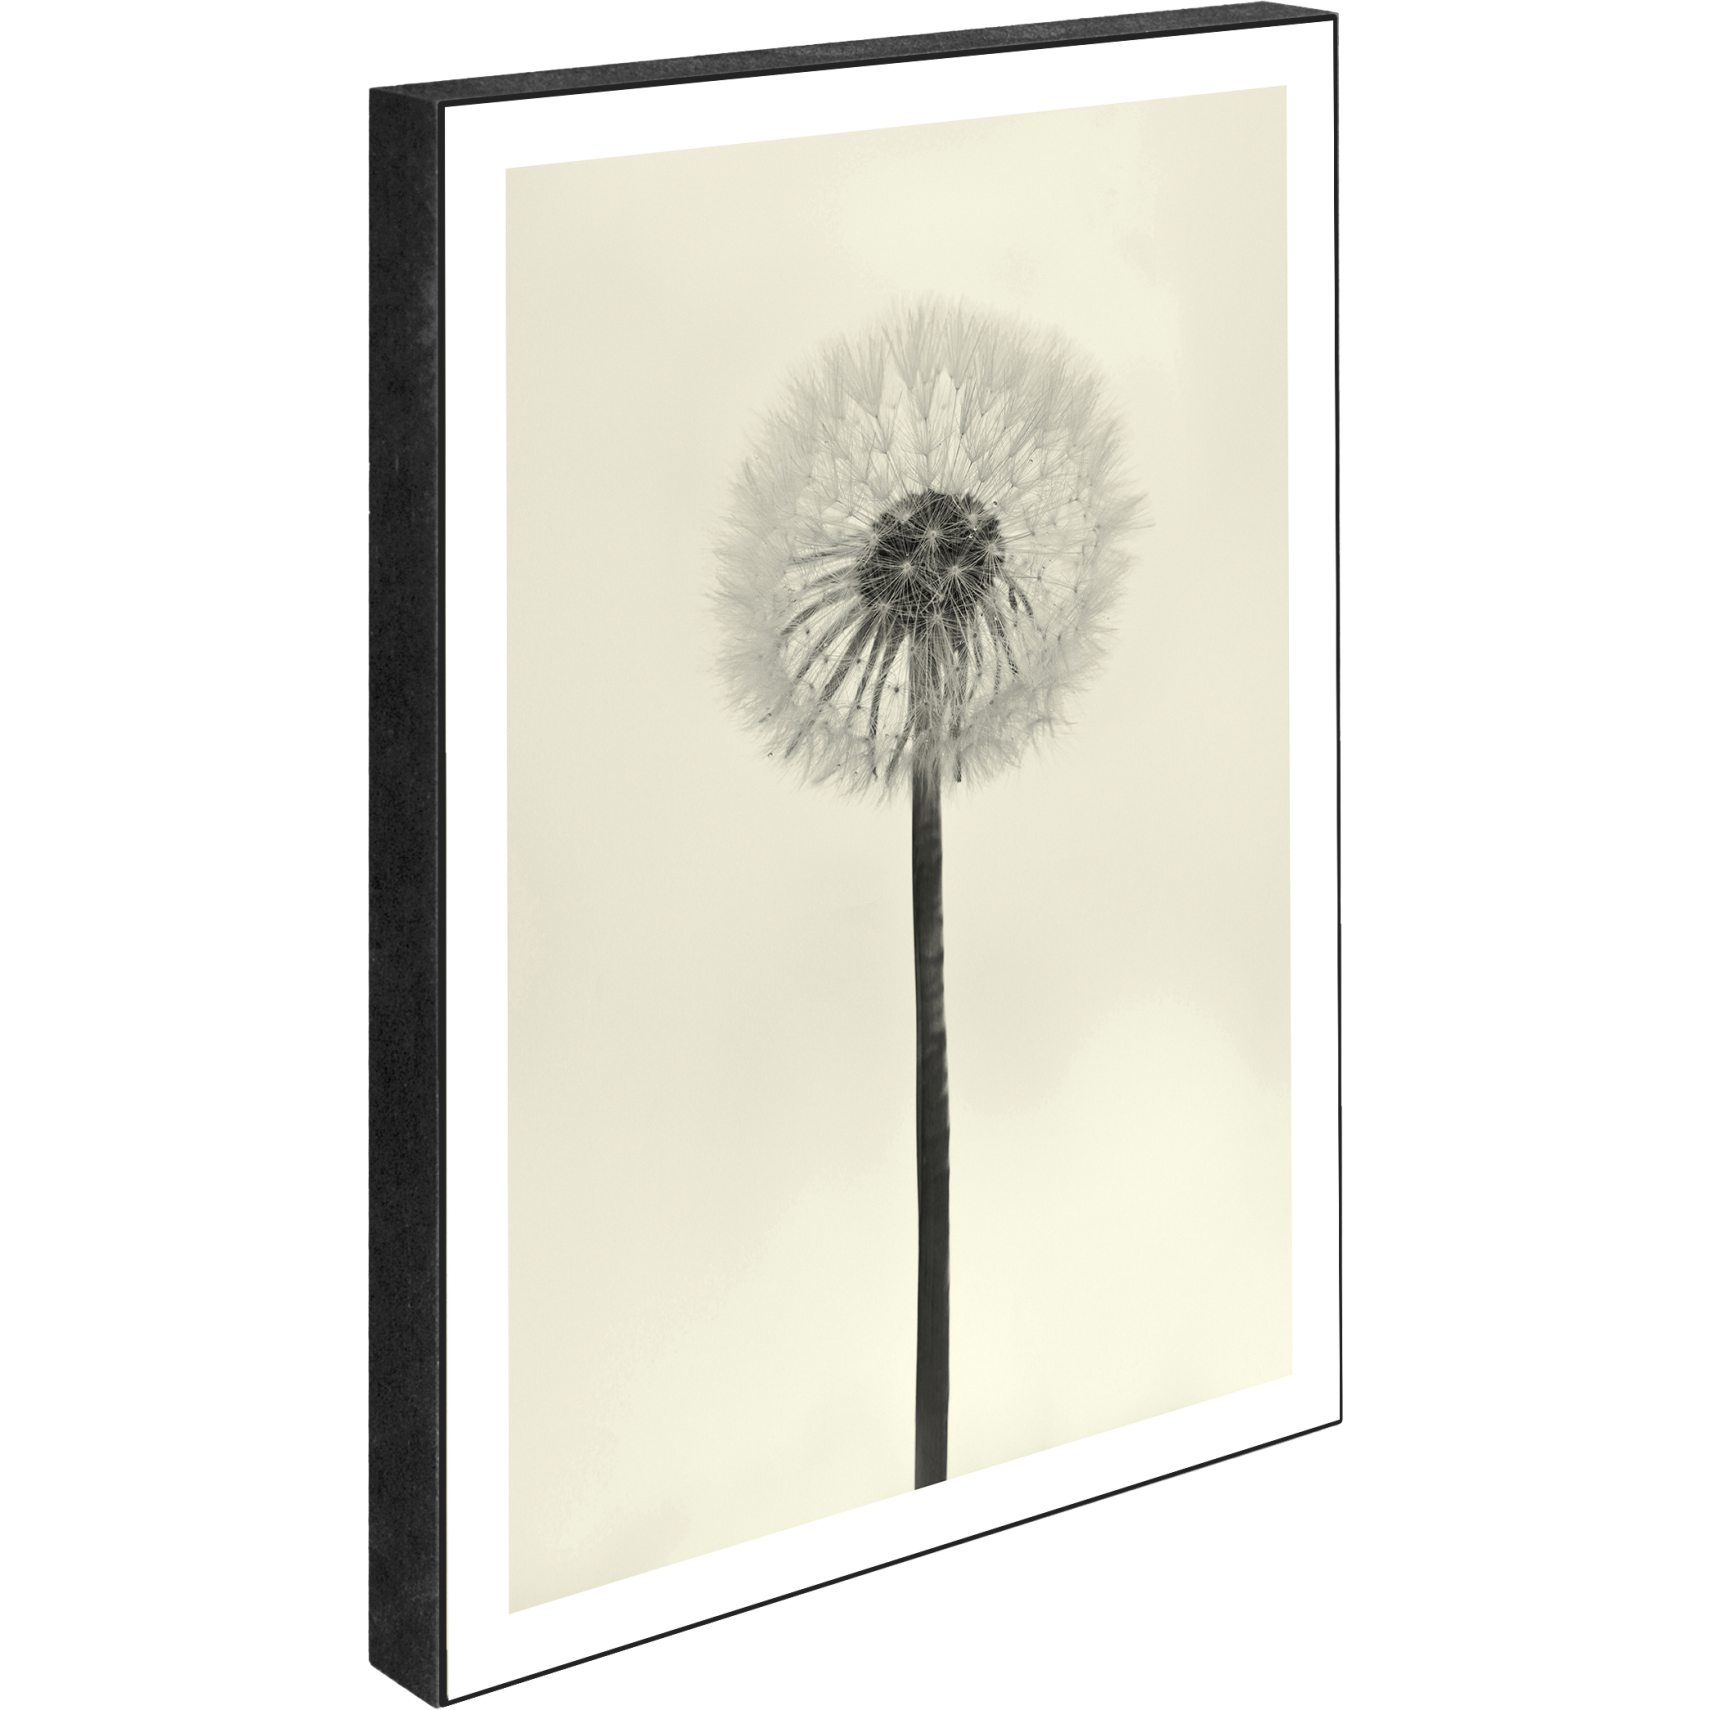 Blocks Skylt 15 x 21 x 2 cm - Dandelion - white